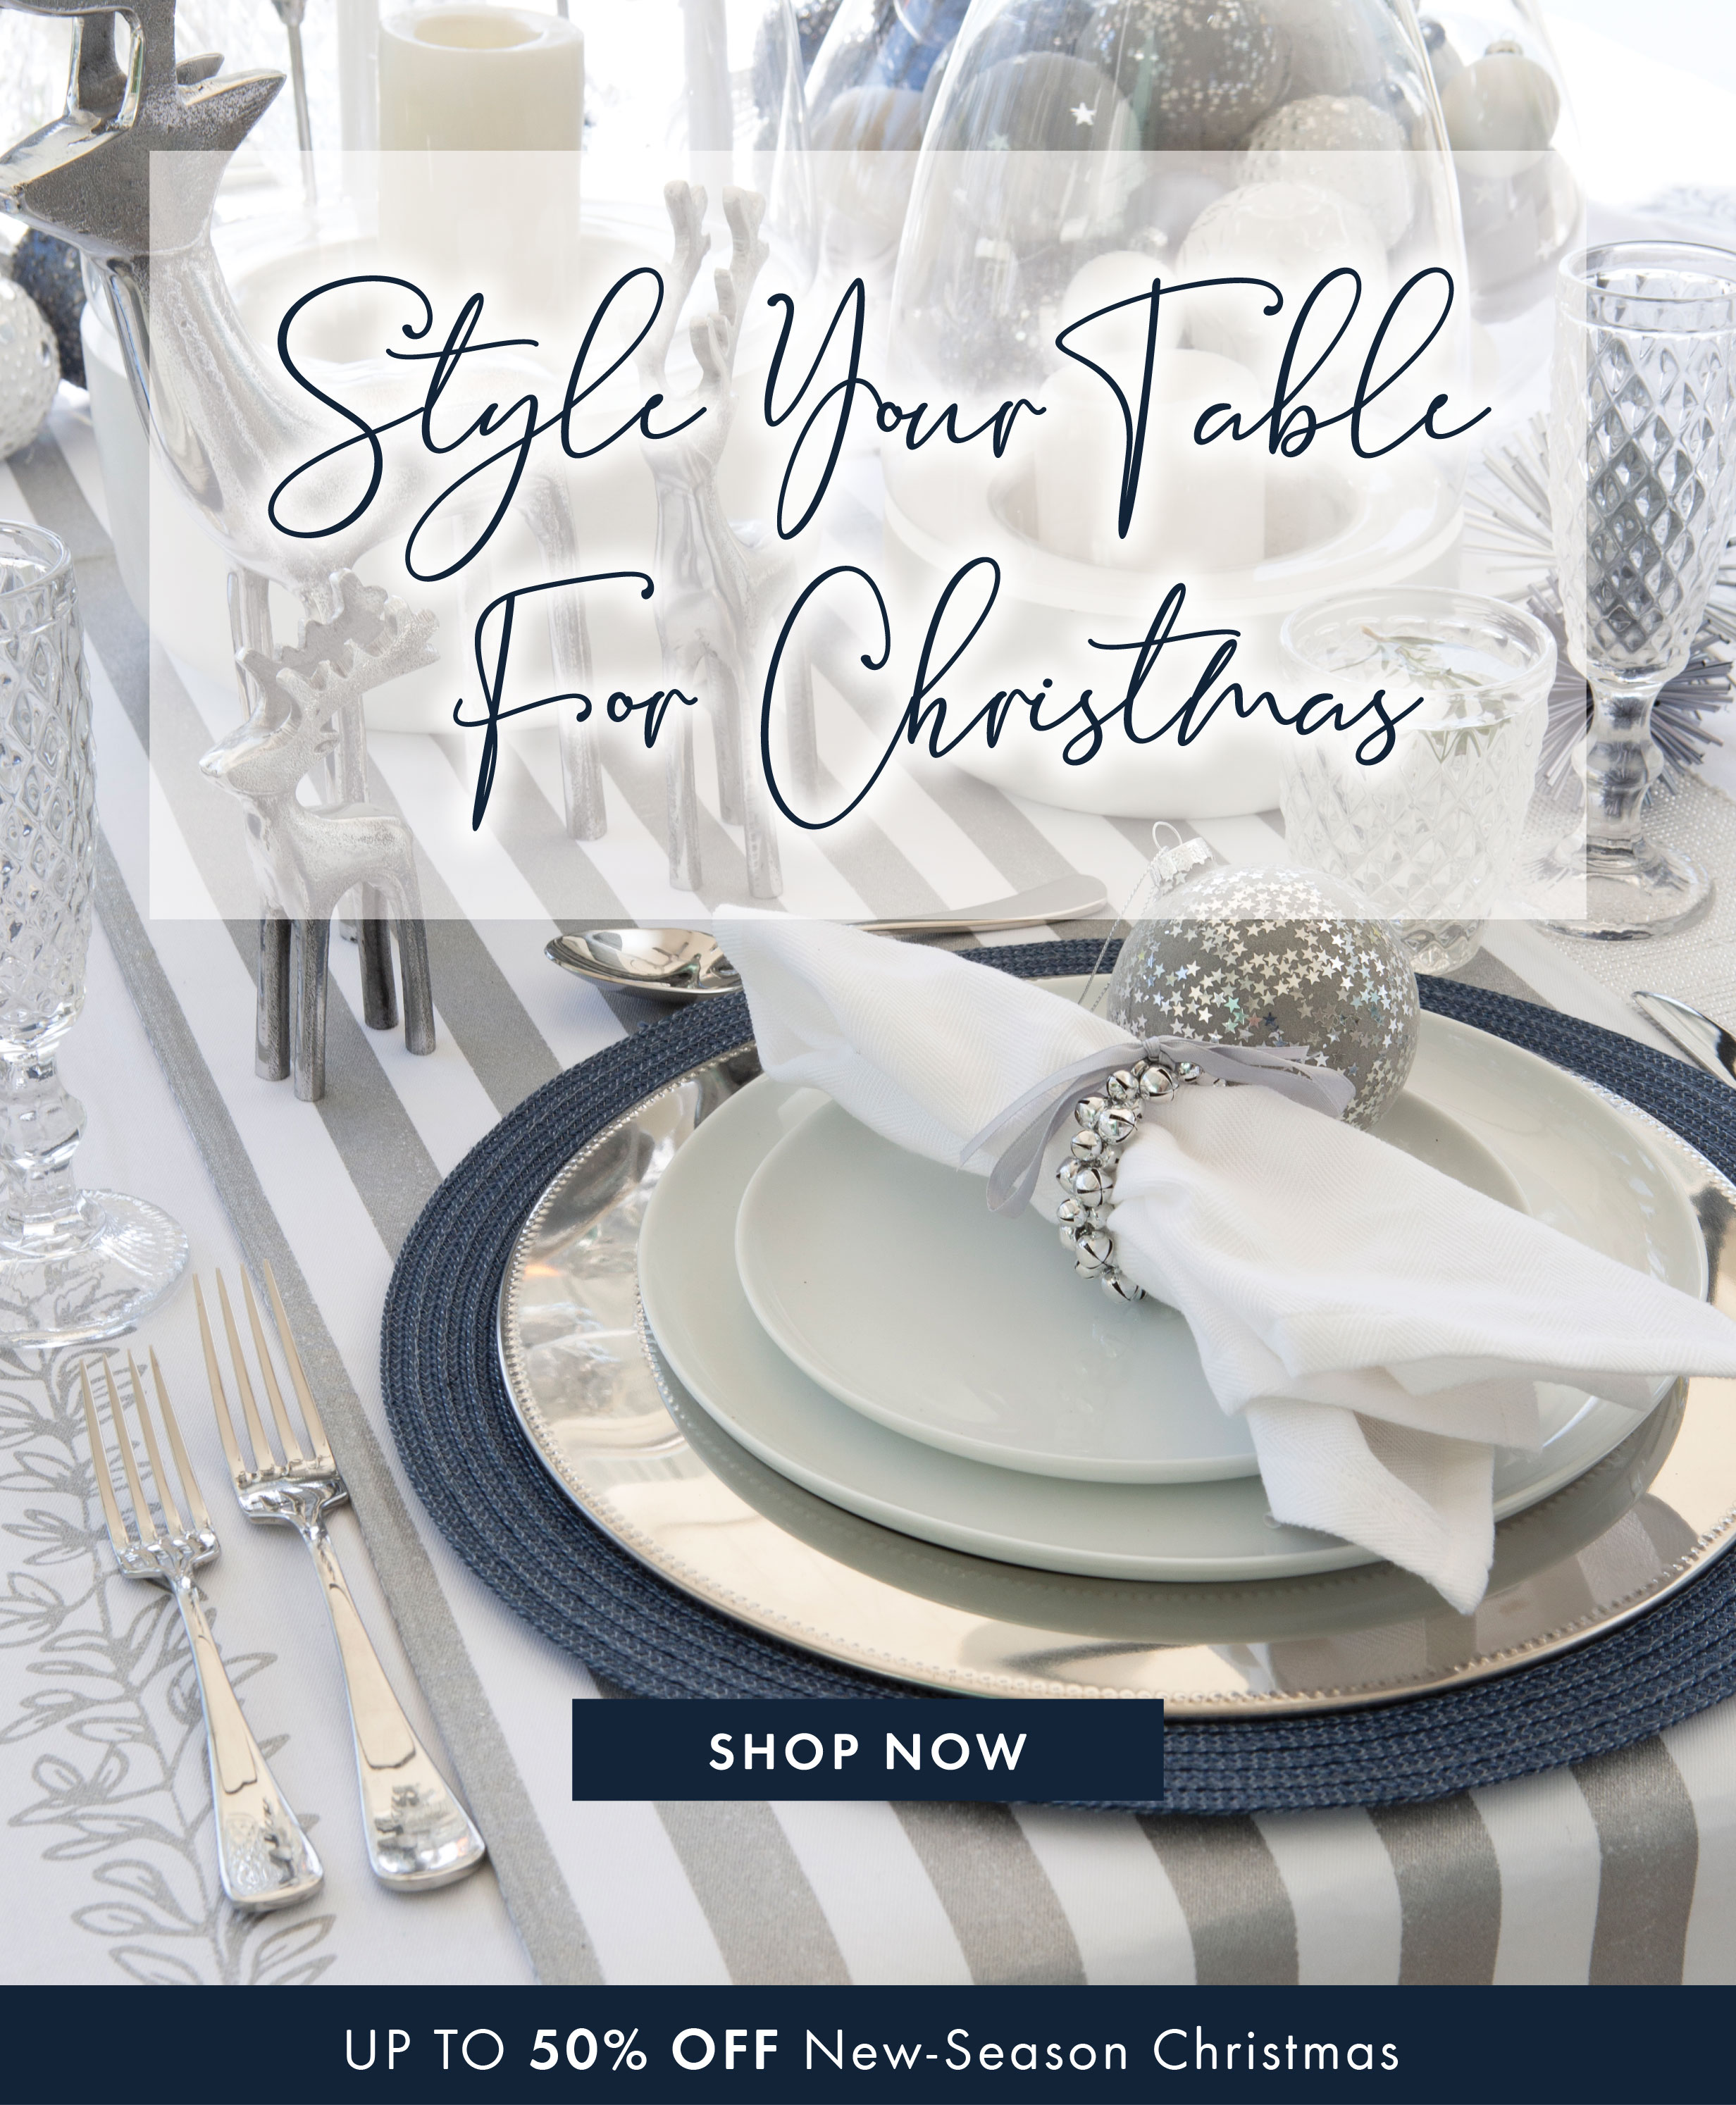 Pillow Talk: Is your Christmas table ready? Up to 50% off new-season ...